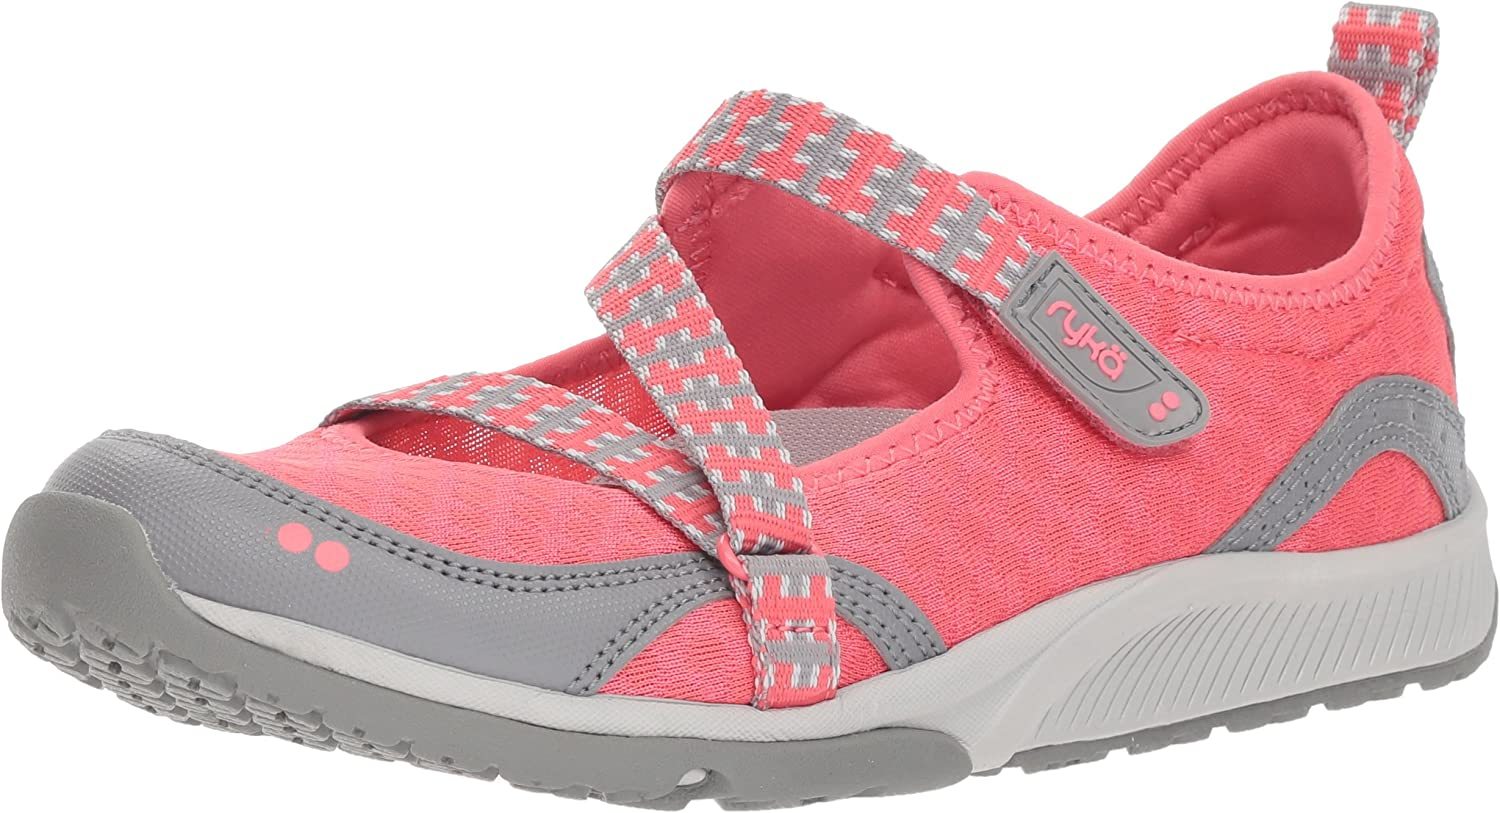 Ryka Womens Kailee Walking shoes